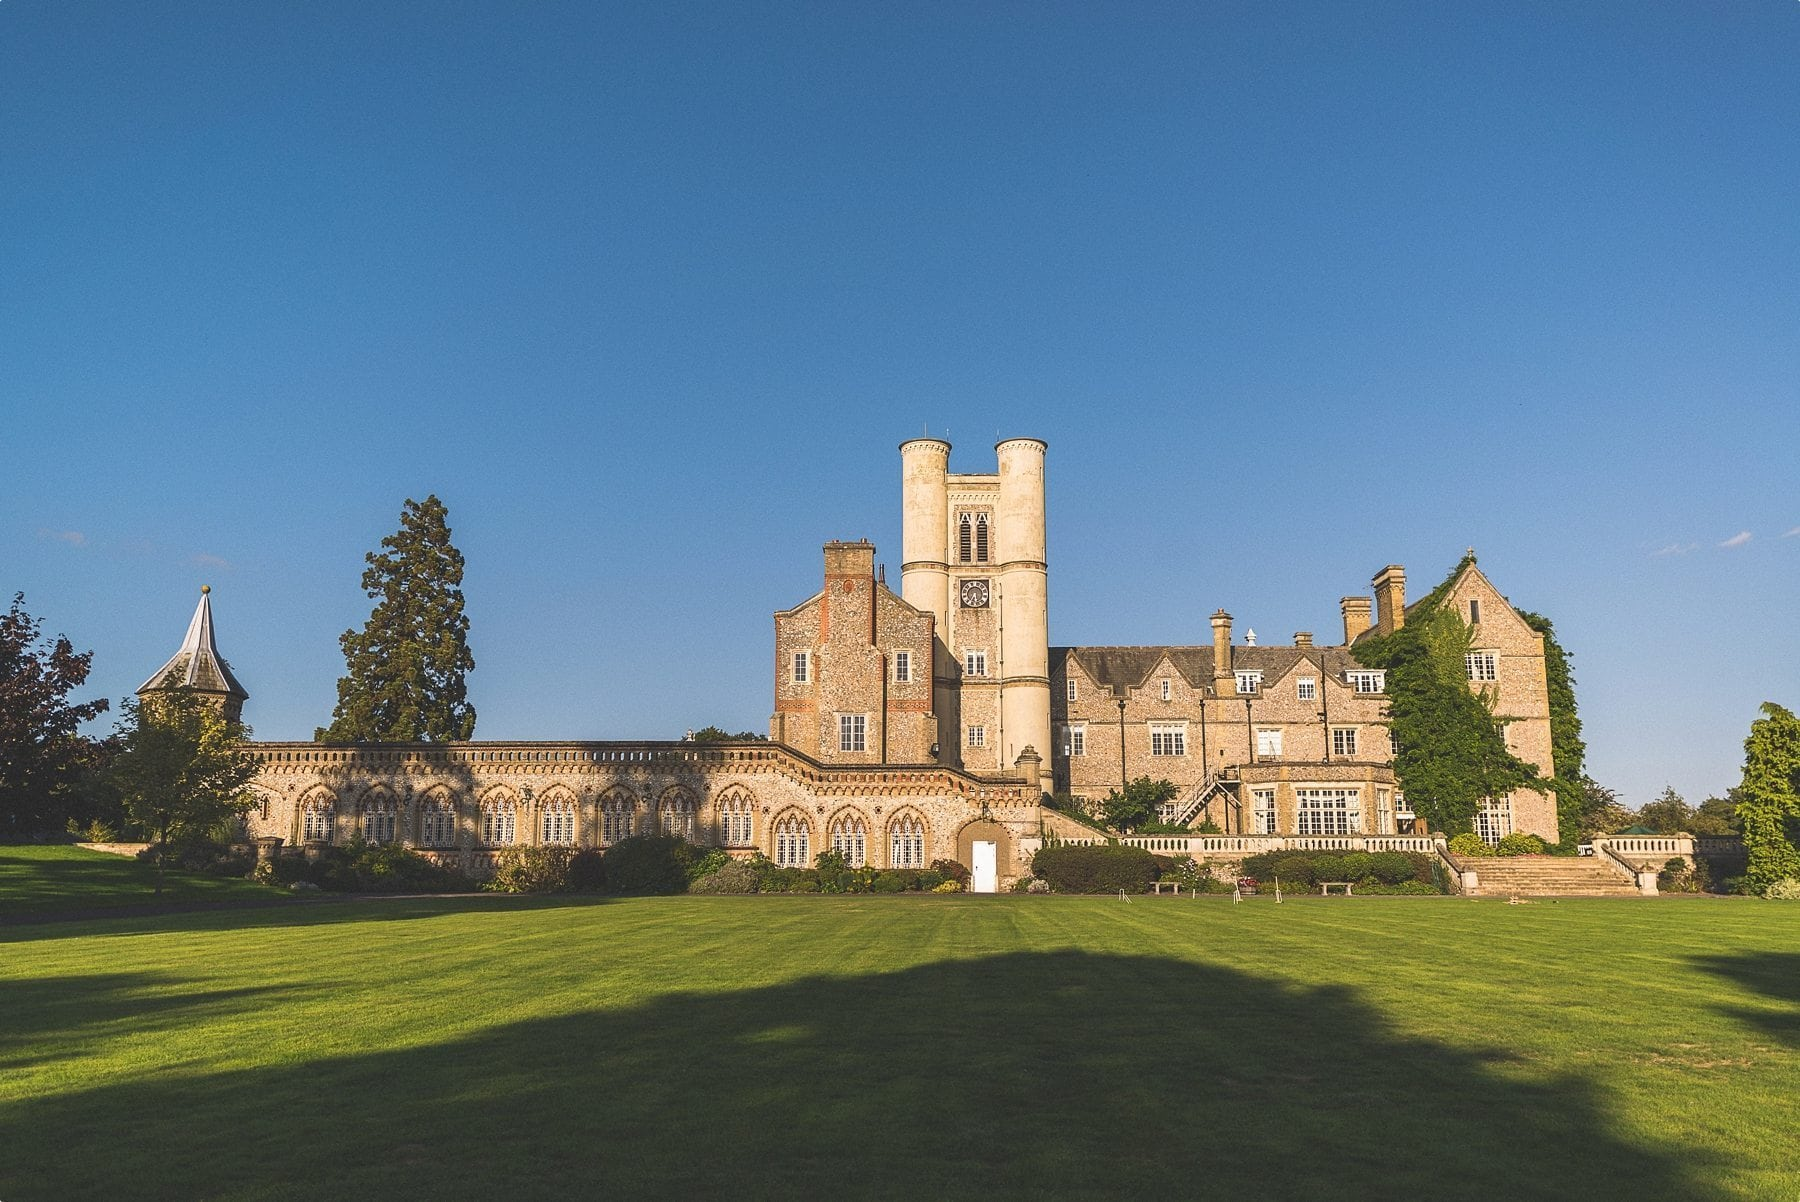 Horsley Towers autumn wedding venue bathed in sunshine